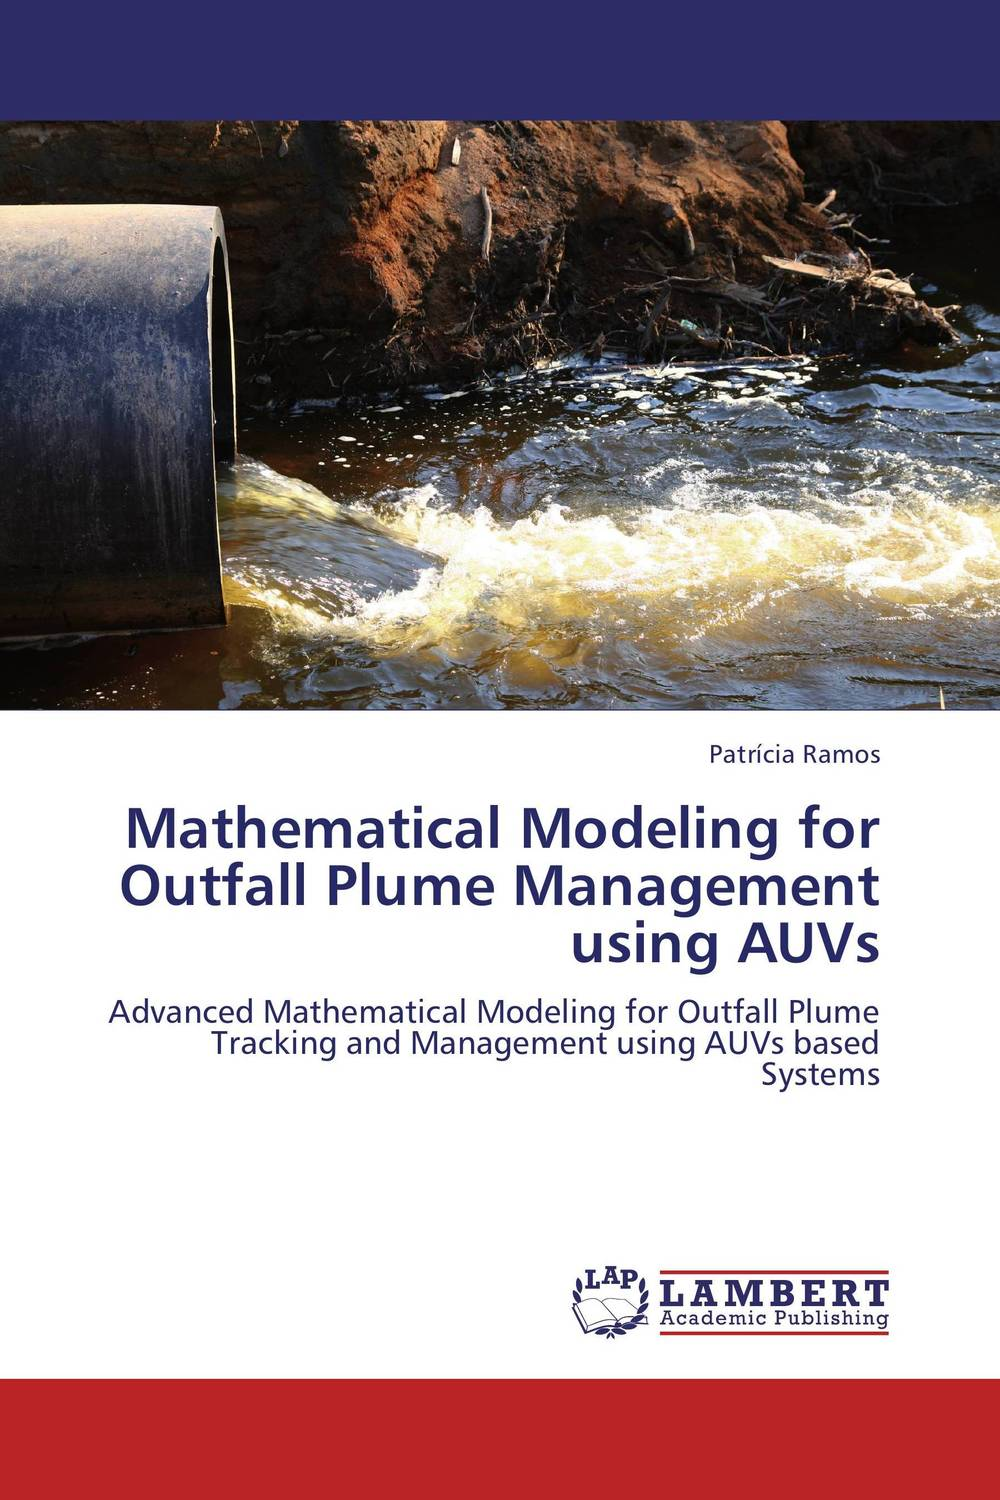 Mathematical Modeling for Outfall Plume Management using AUVs